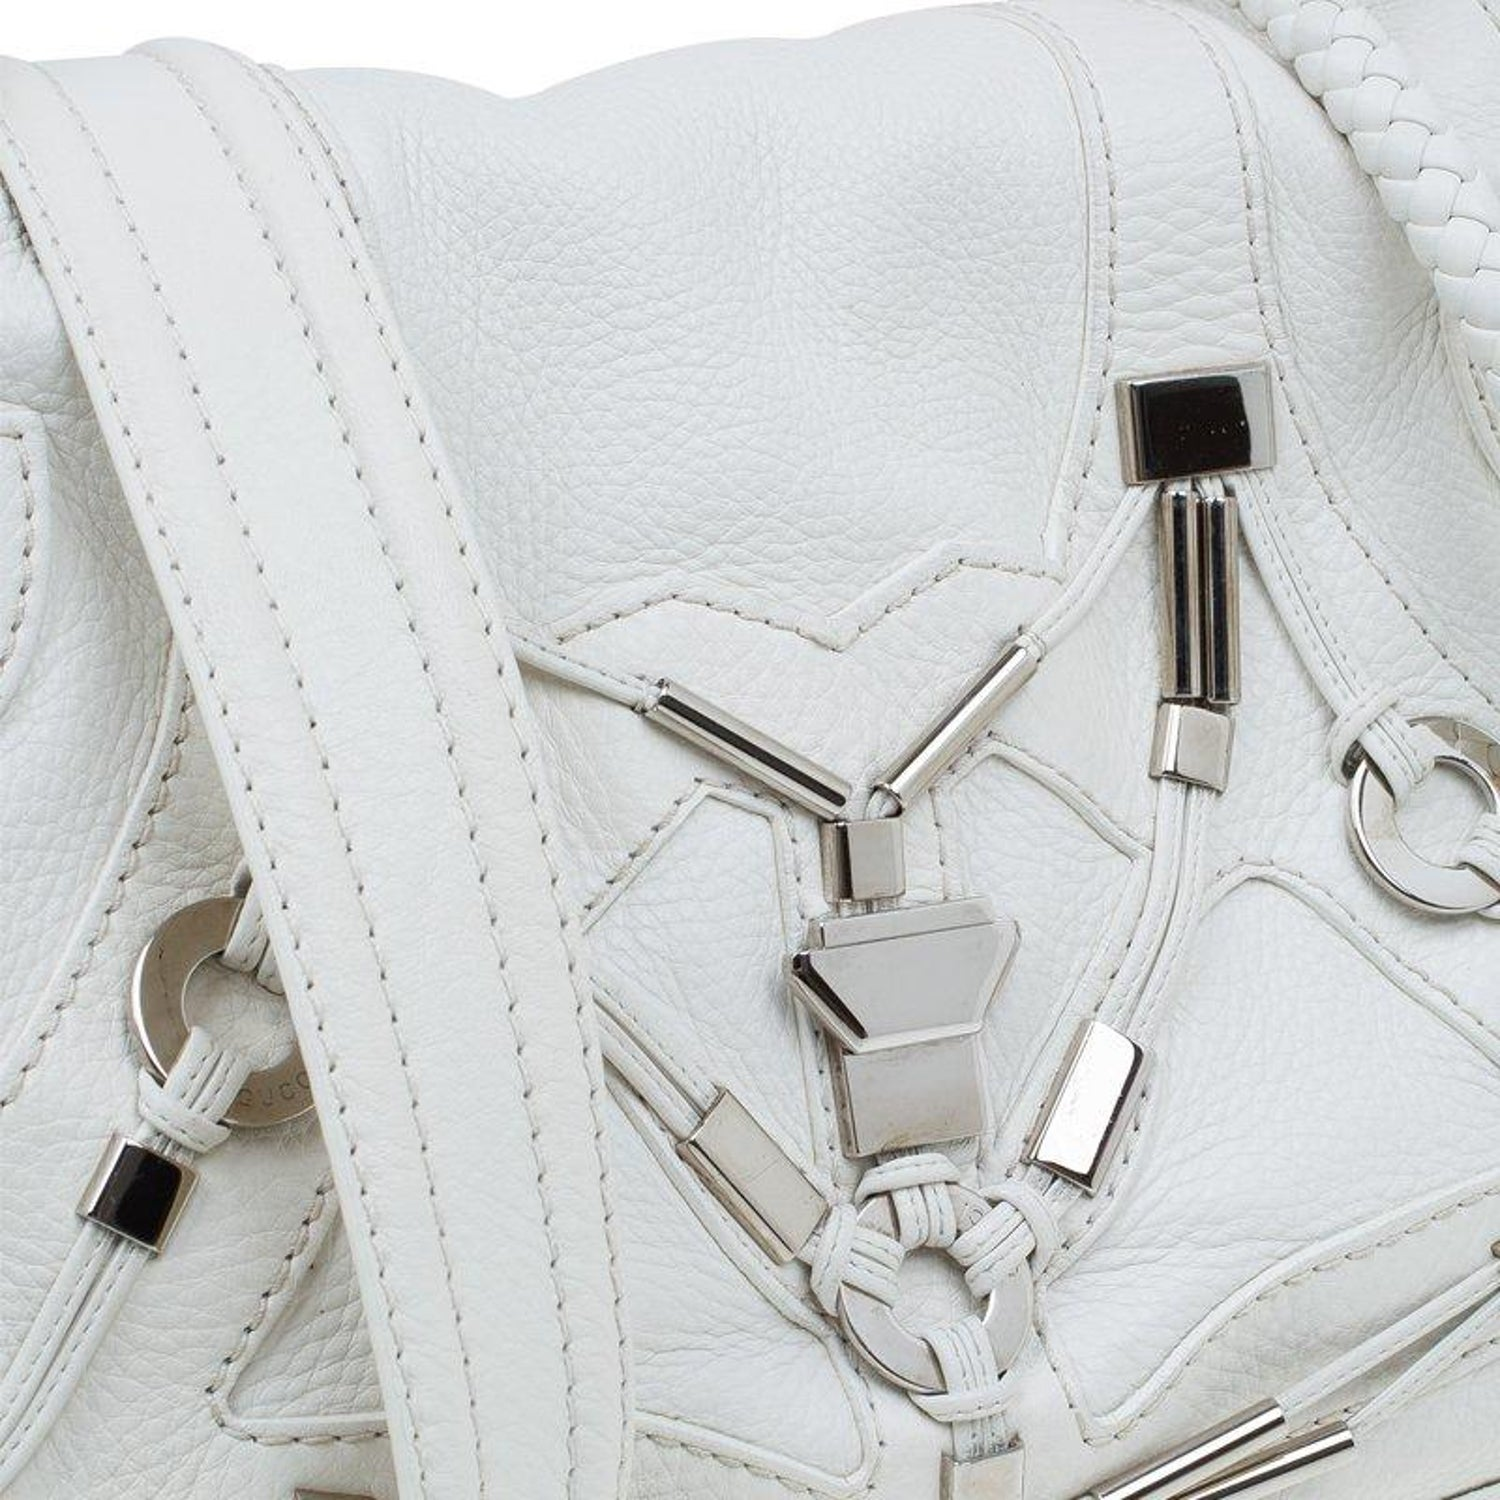 d751f449d15ae5 Gucci White Leather Large Techno Horsebit Flap Shoulder Bag For Sale at  1stdibs